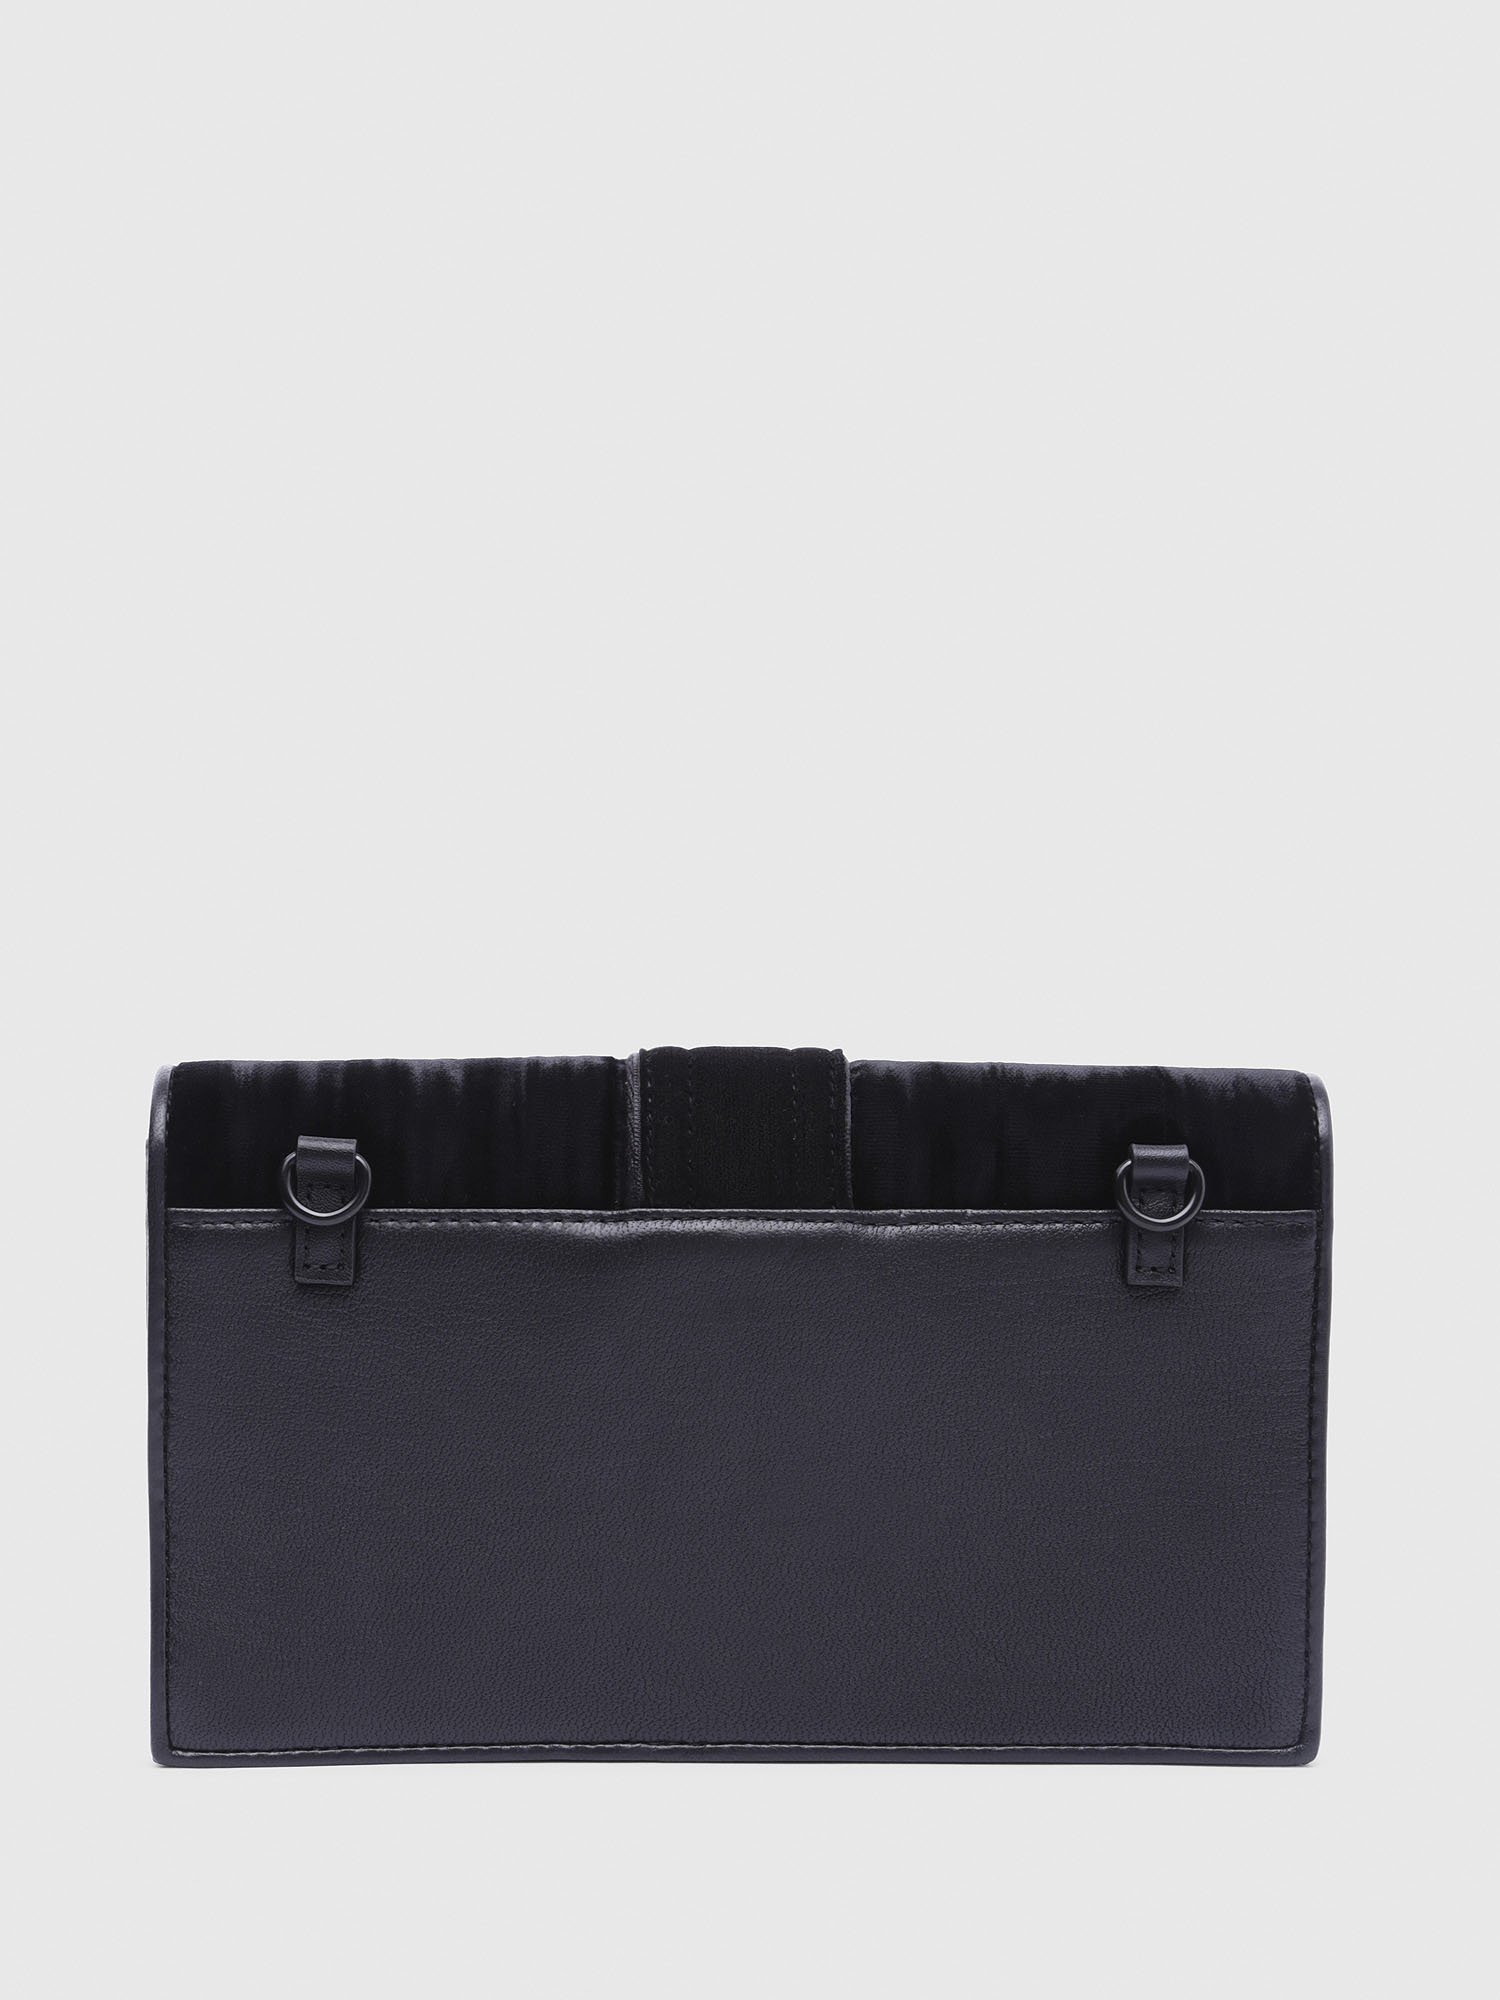 Diesel - DIPSY,  - Small Wallets - Image 2